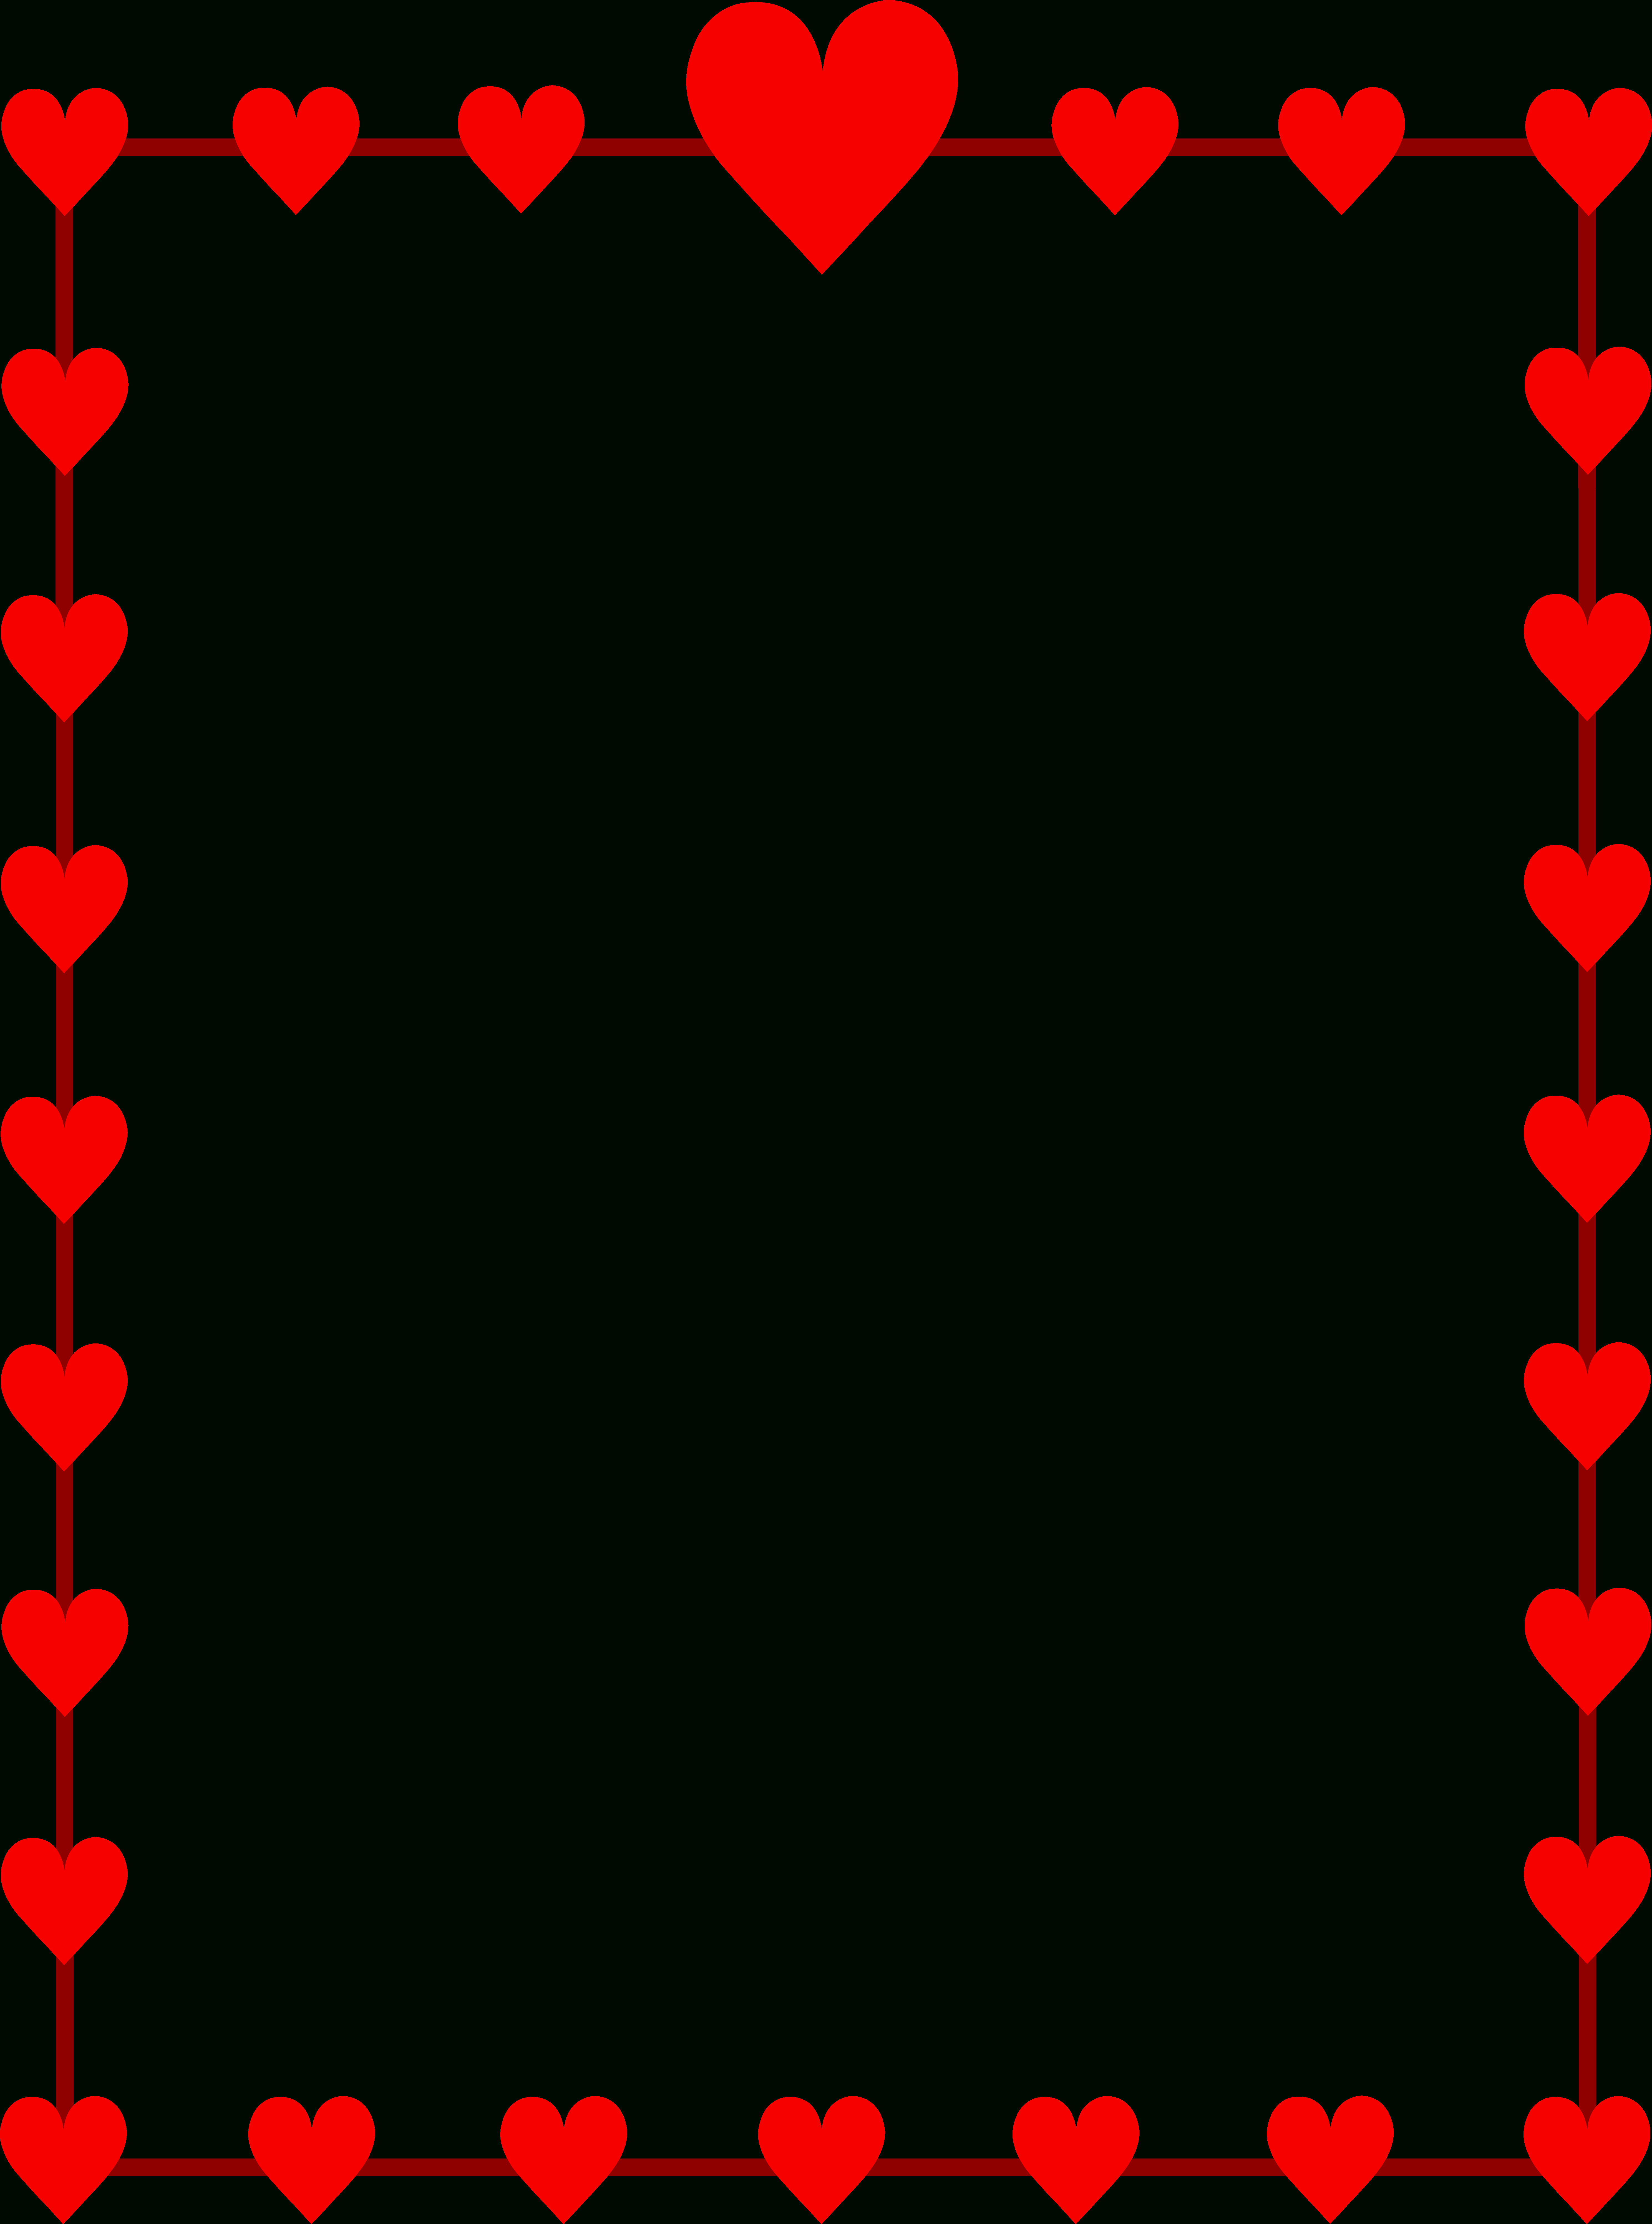 Free Heart Border For Word, Download Free Clip Art, Free Clip Art On - Free Printable Heart Designs